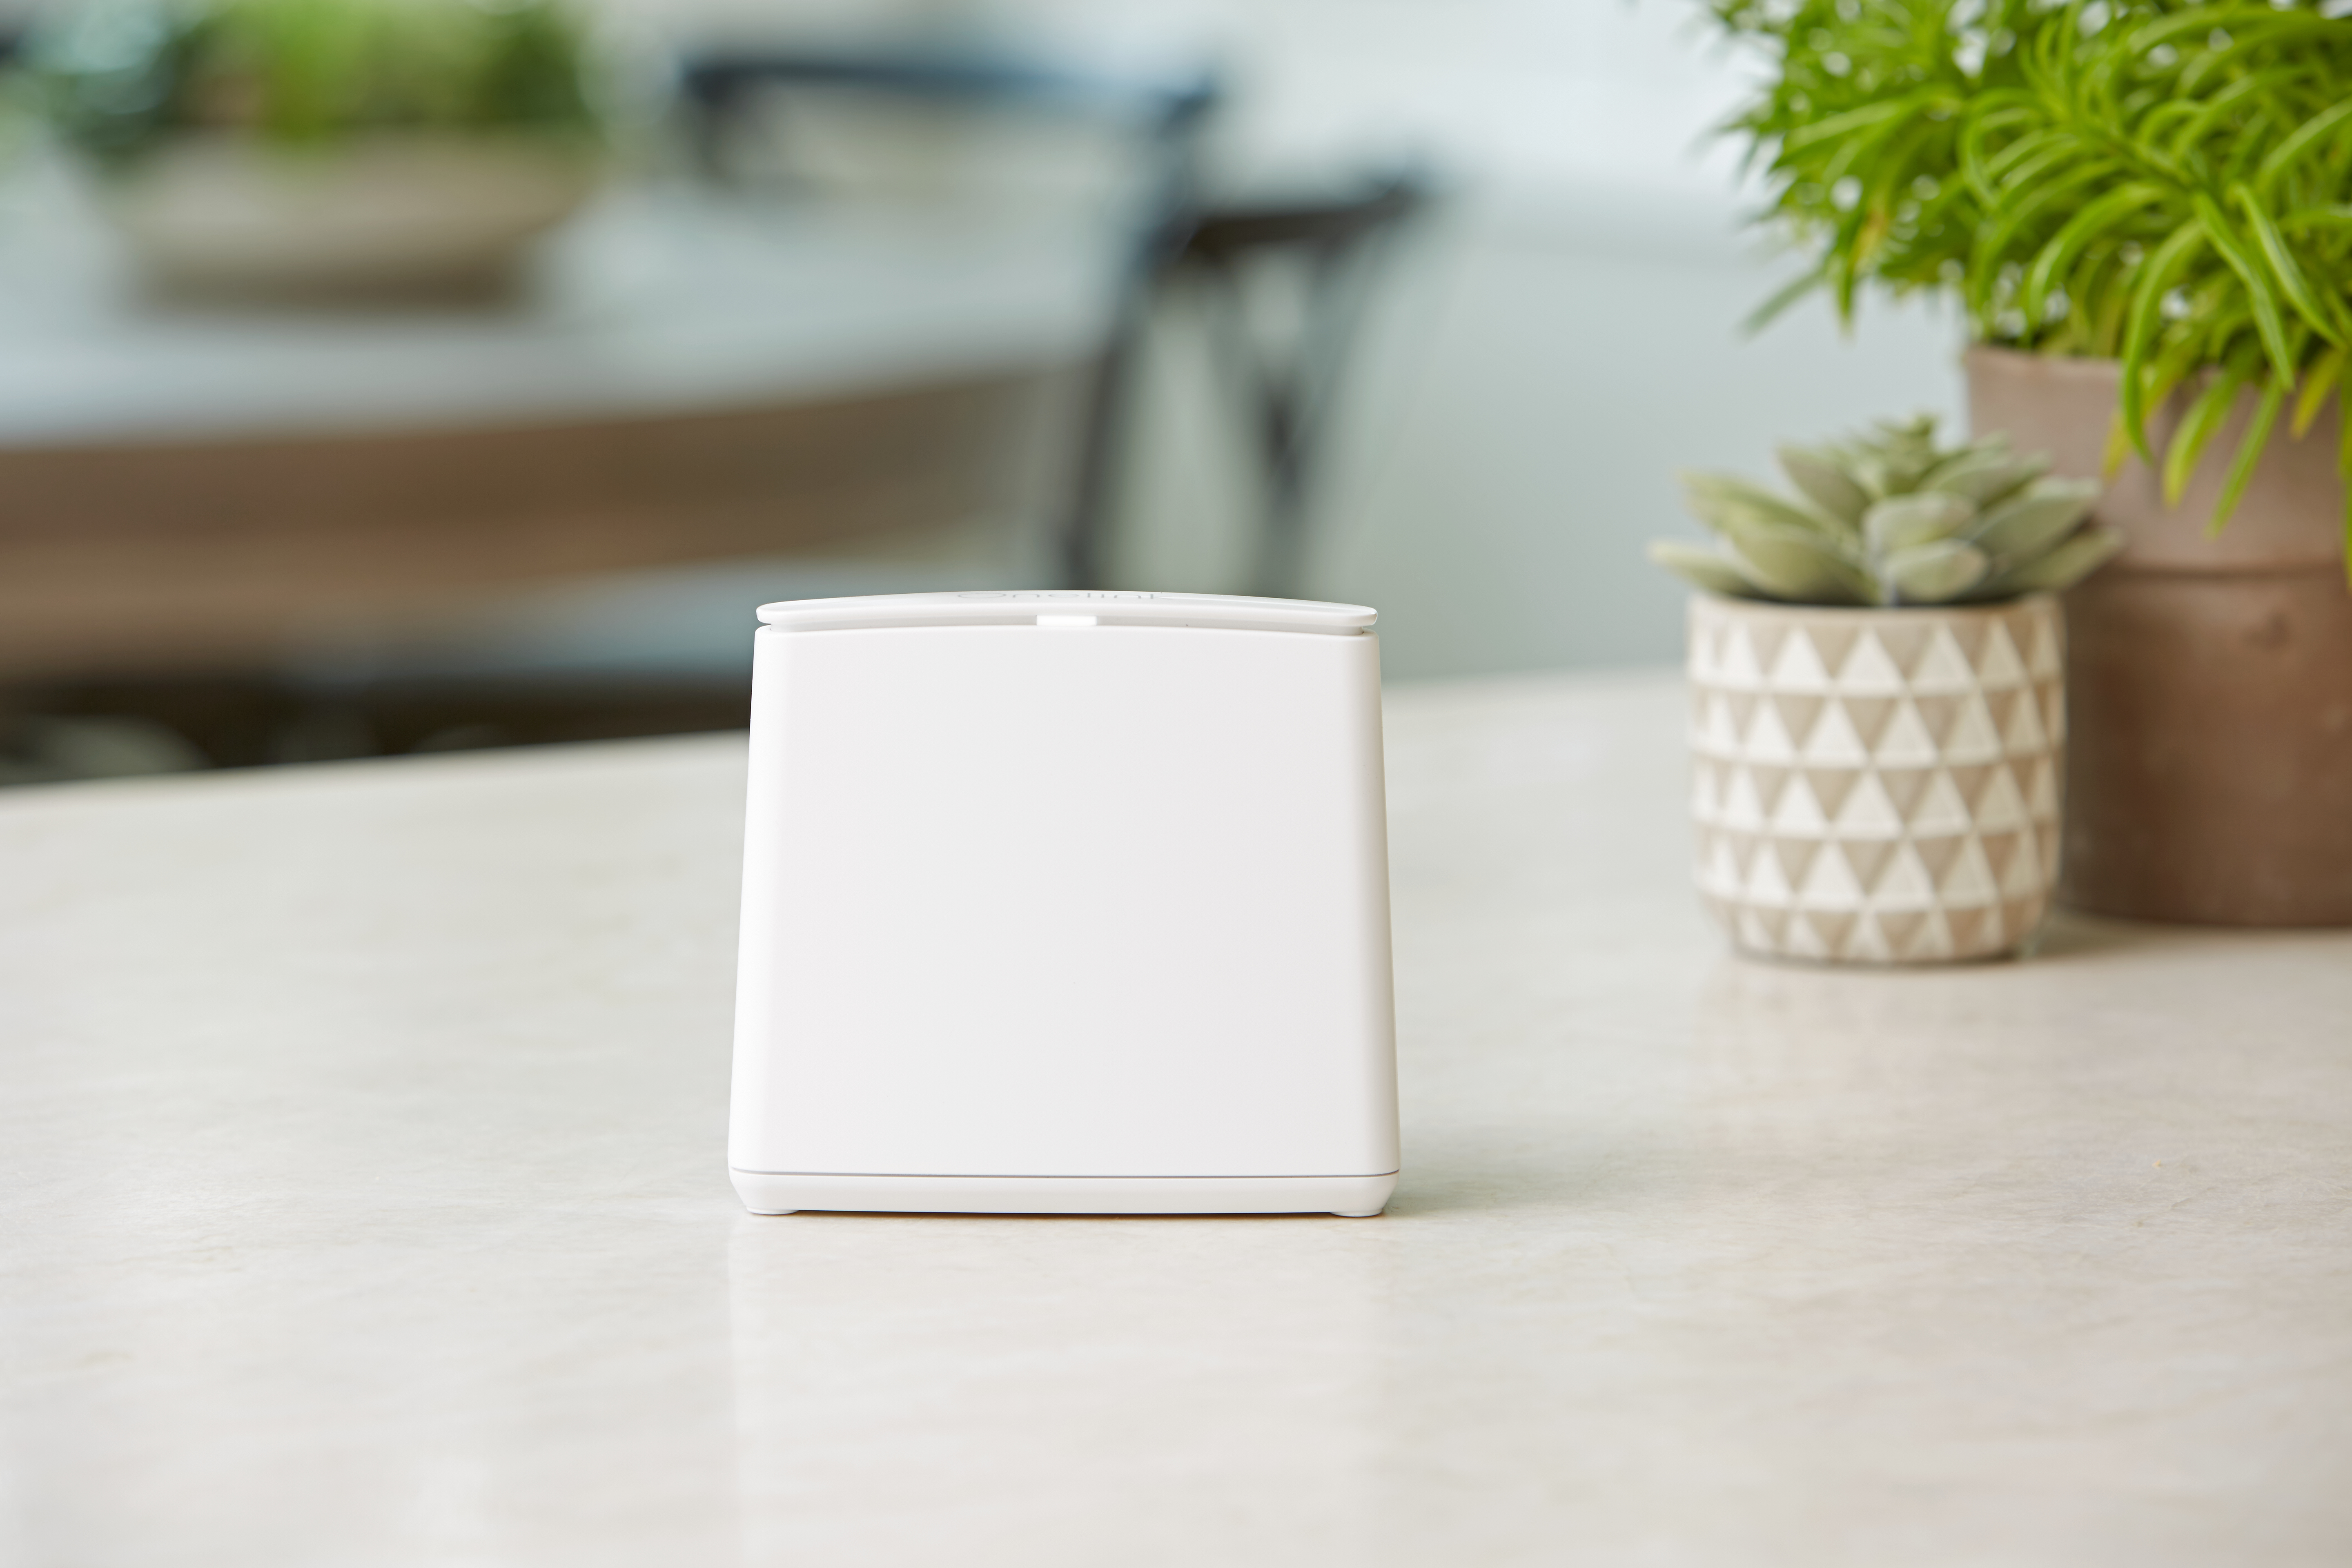 Onelink Secure Connect Home Wi Fi Mesh Dual Band Solution